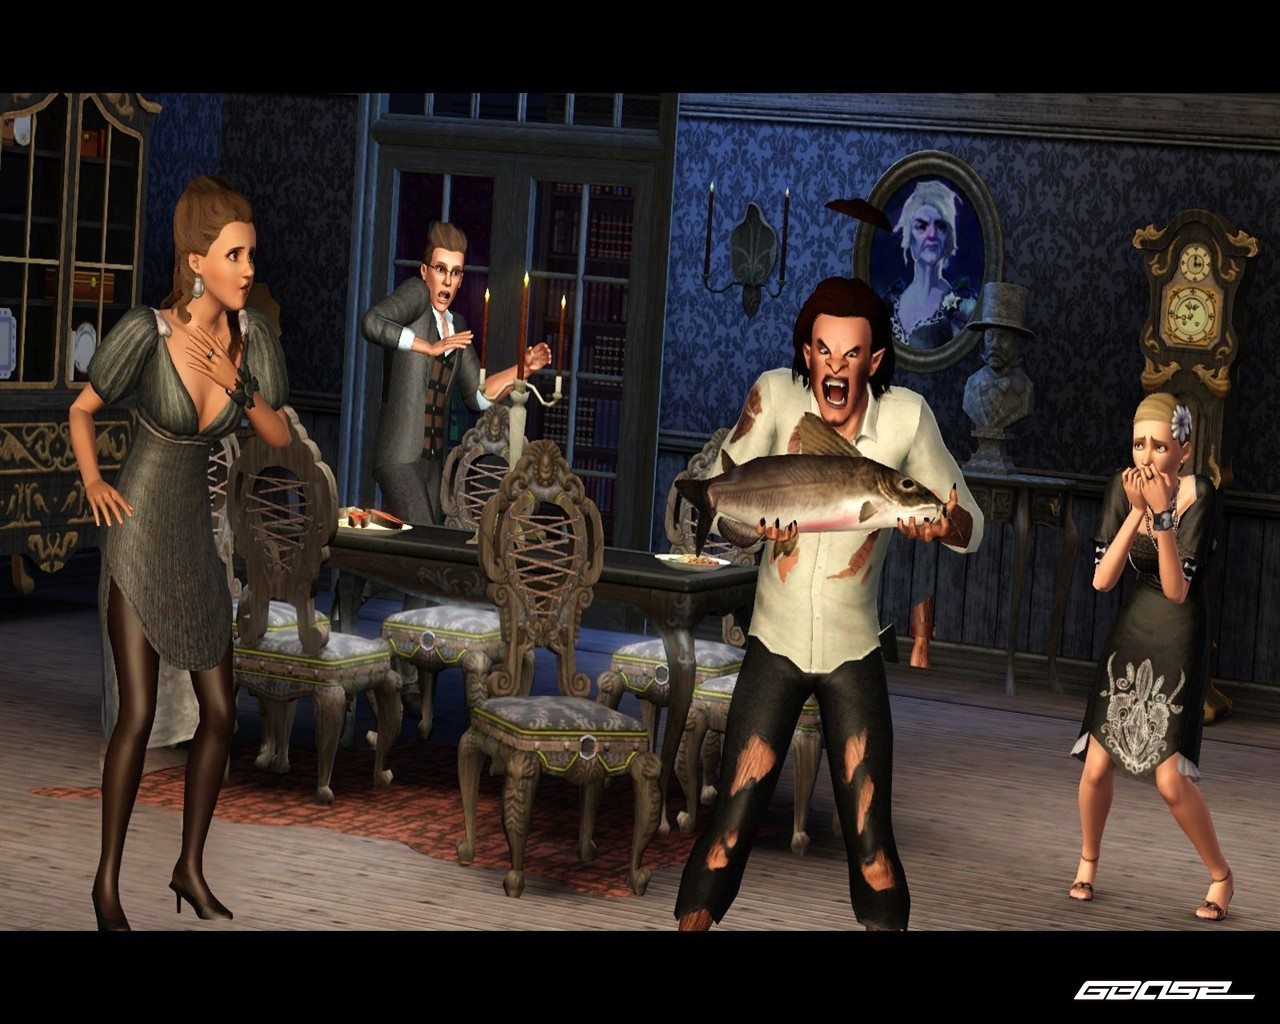 the sims 3 supernatural review youtubeSIMS 3 SUPERNATURAL DEMO yRGBICmr